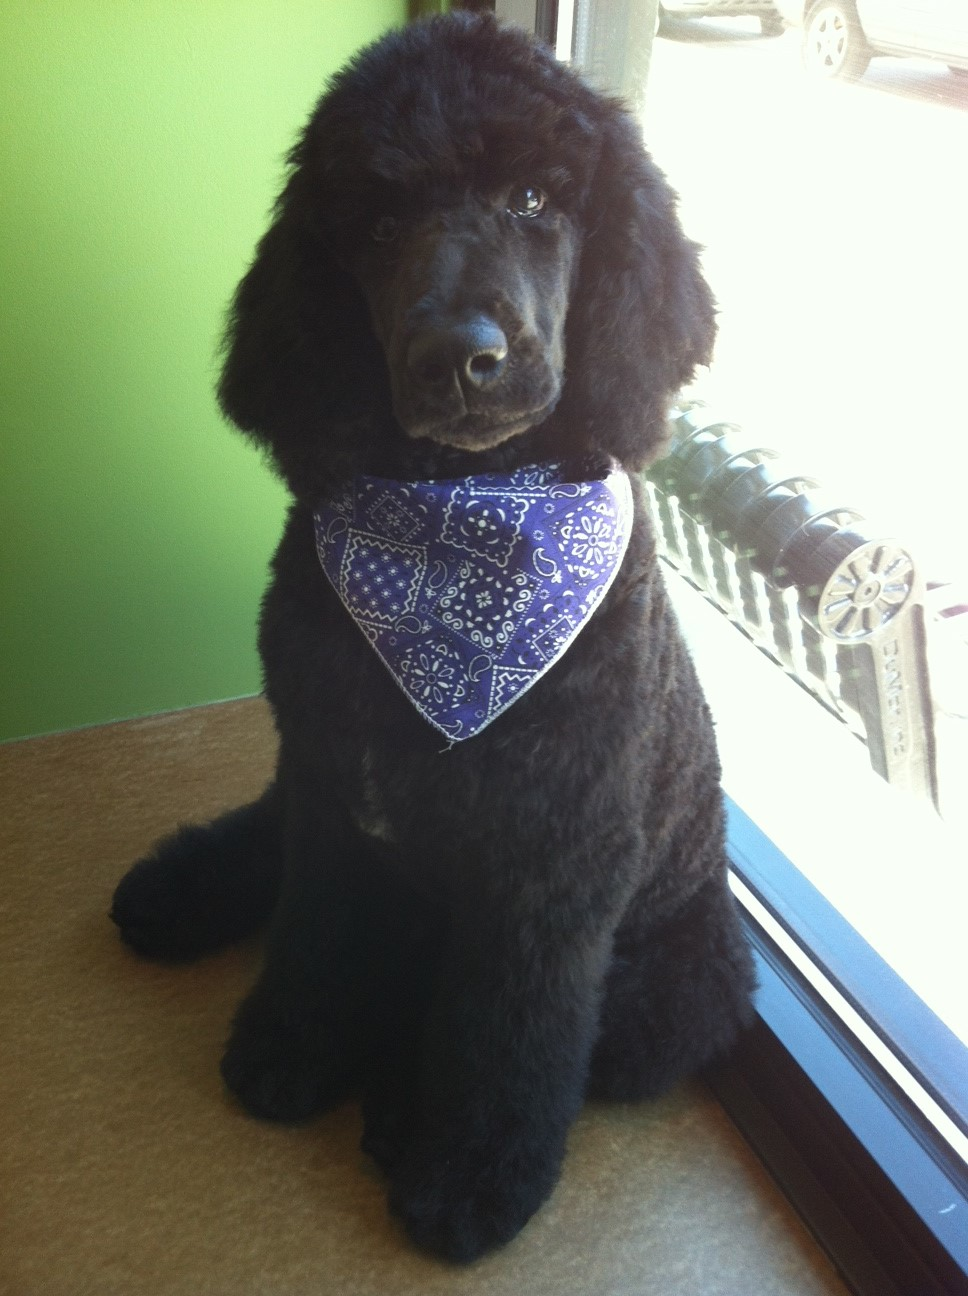 Shadow had his puppy's first groom at 4 months old and was so well-behaved Jessica was able to give him an all over trim!